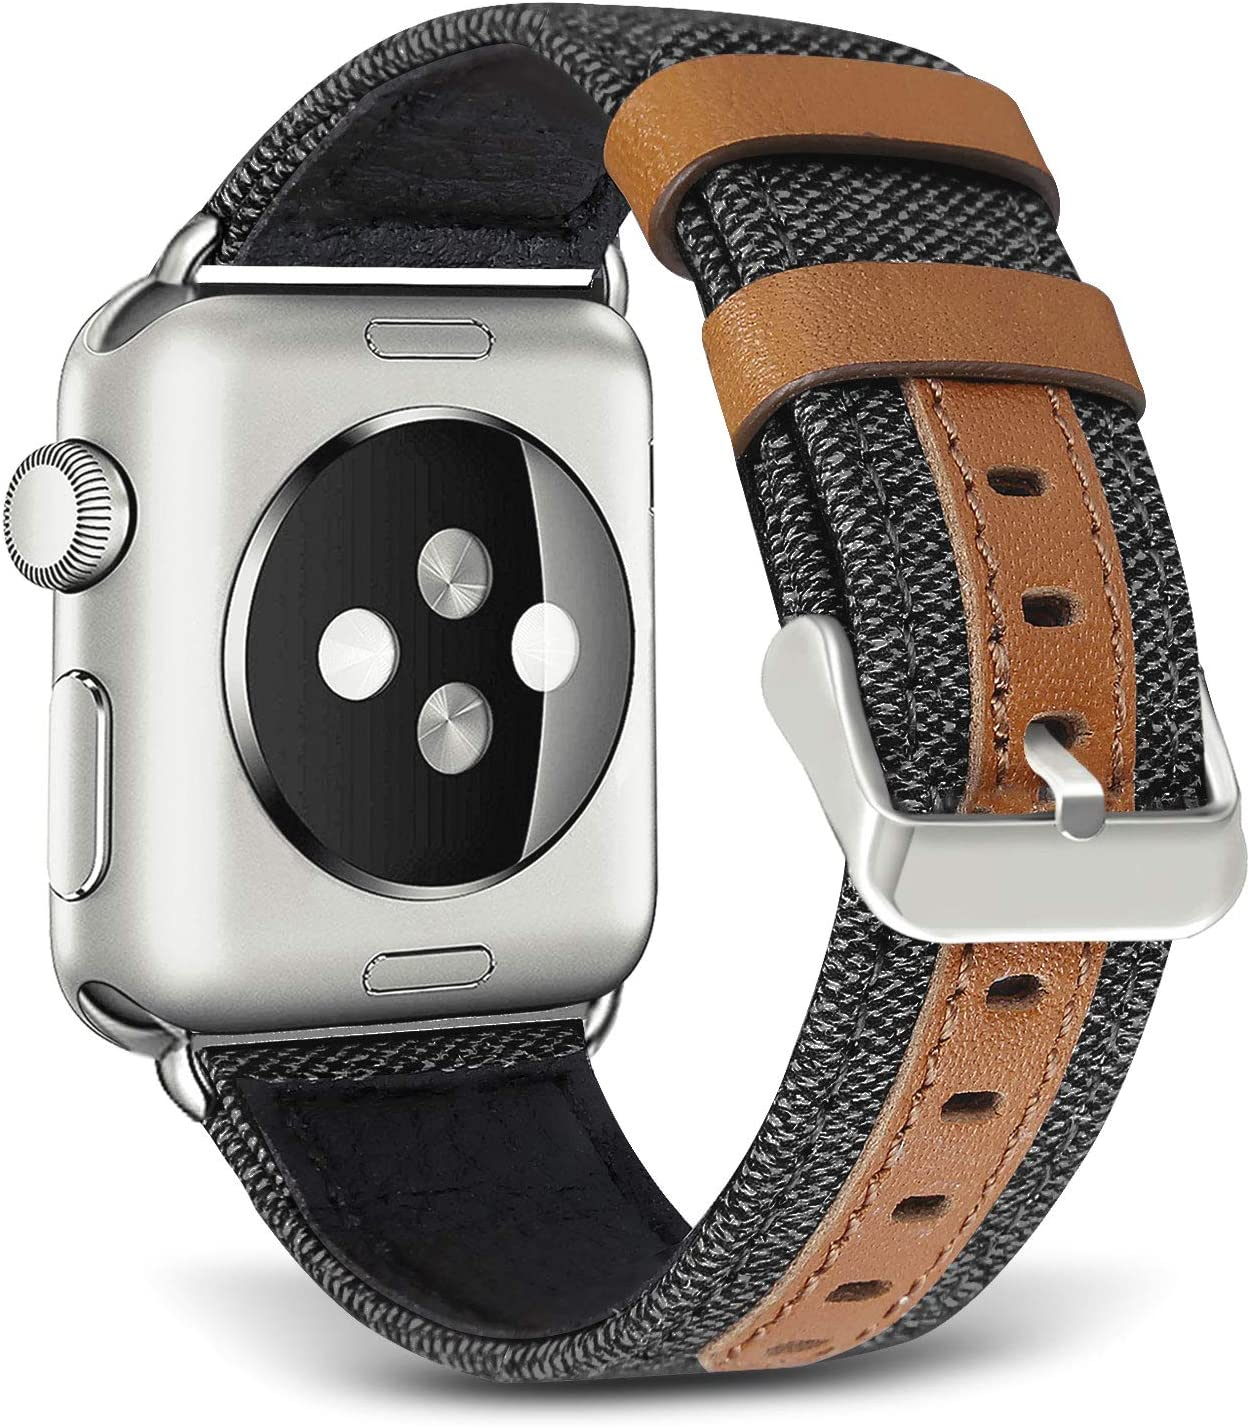 SKYLET Compatible with Apple Watch Bands 44mm 42mm 40mm 38mm Leather Bands, Canvas Fabric Soft Wristbands Compatible with Apple Watch Series 6/5/4/3/2/1/se Men Women Black